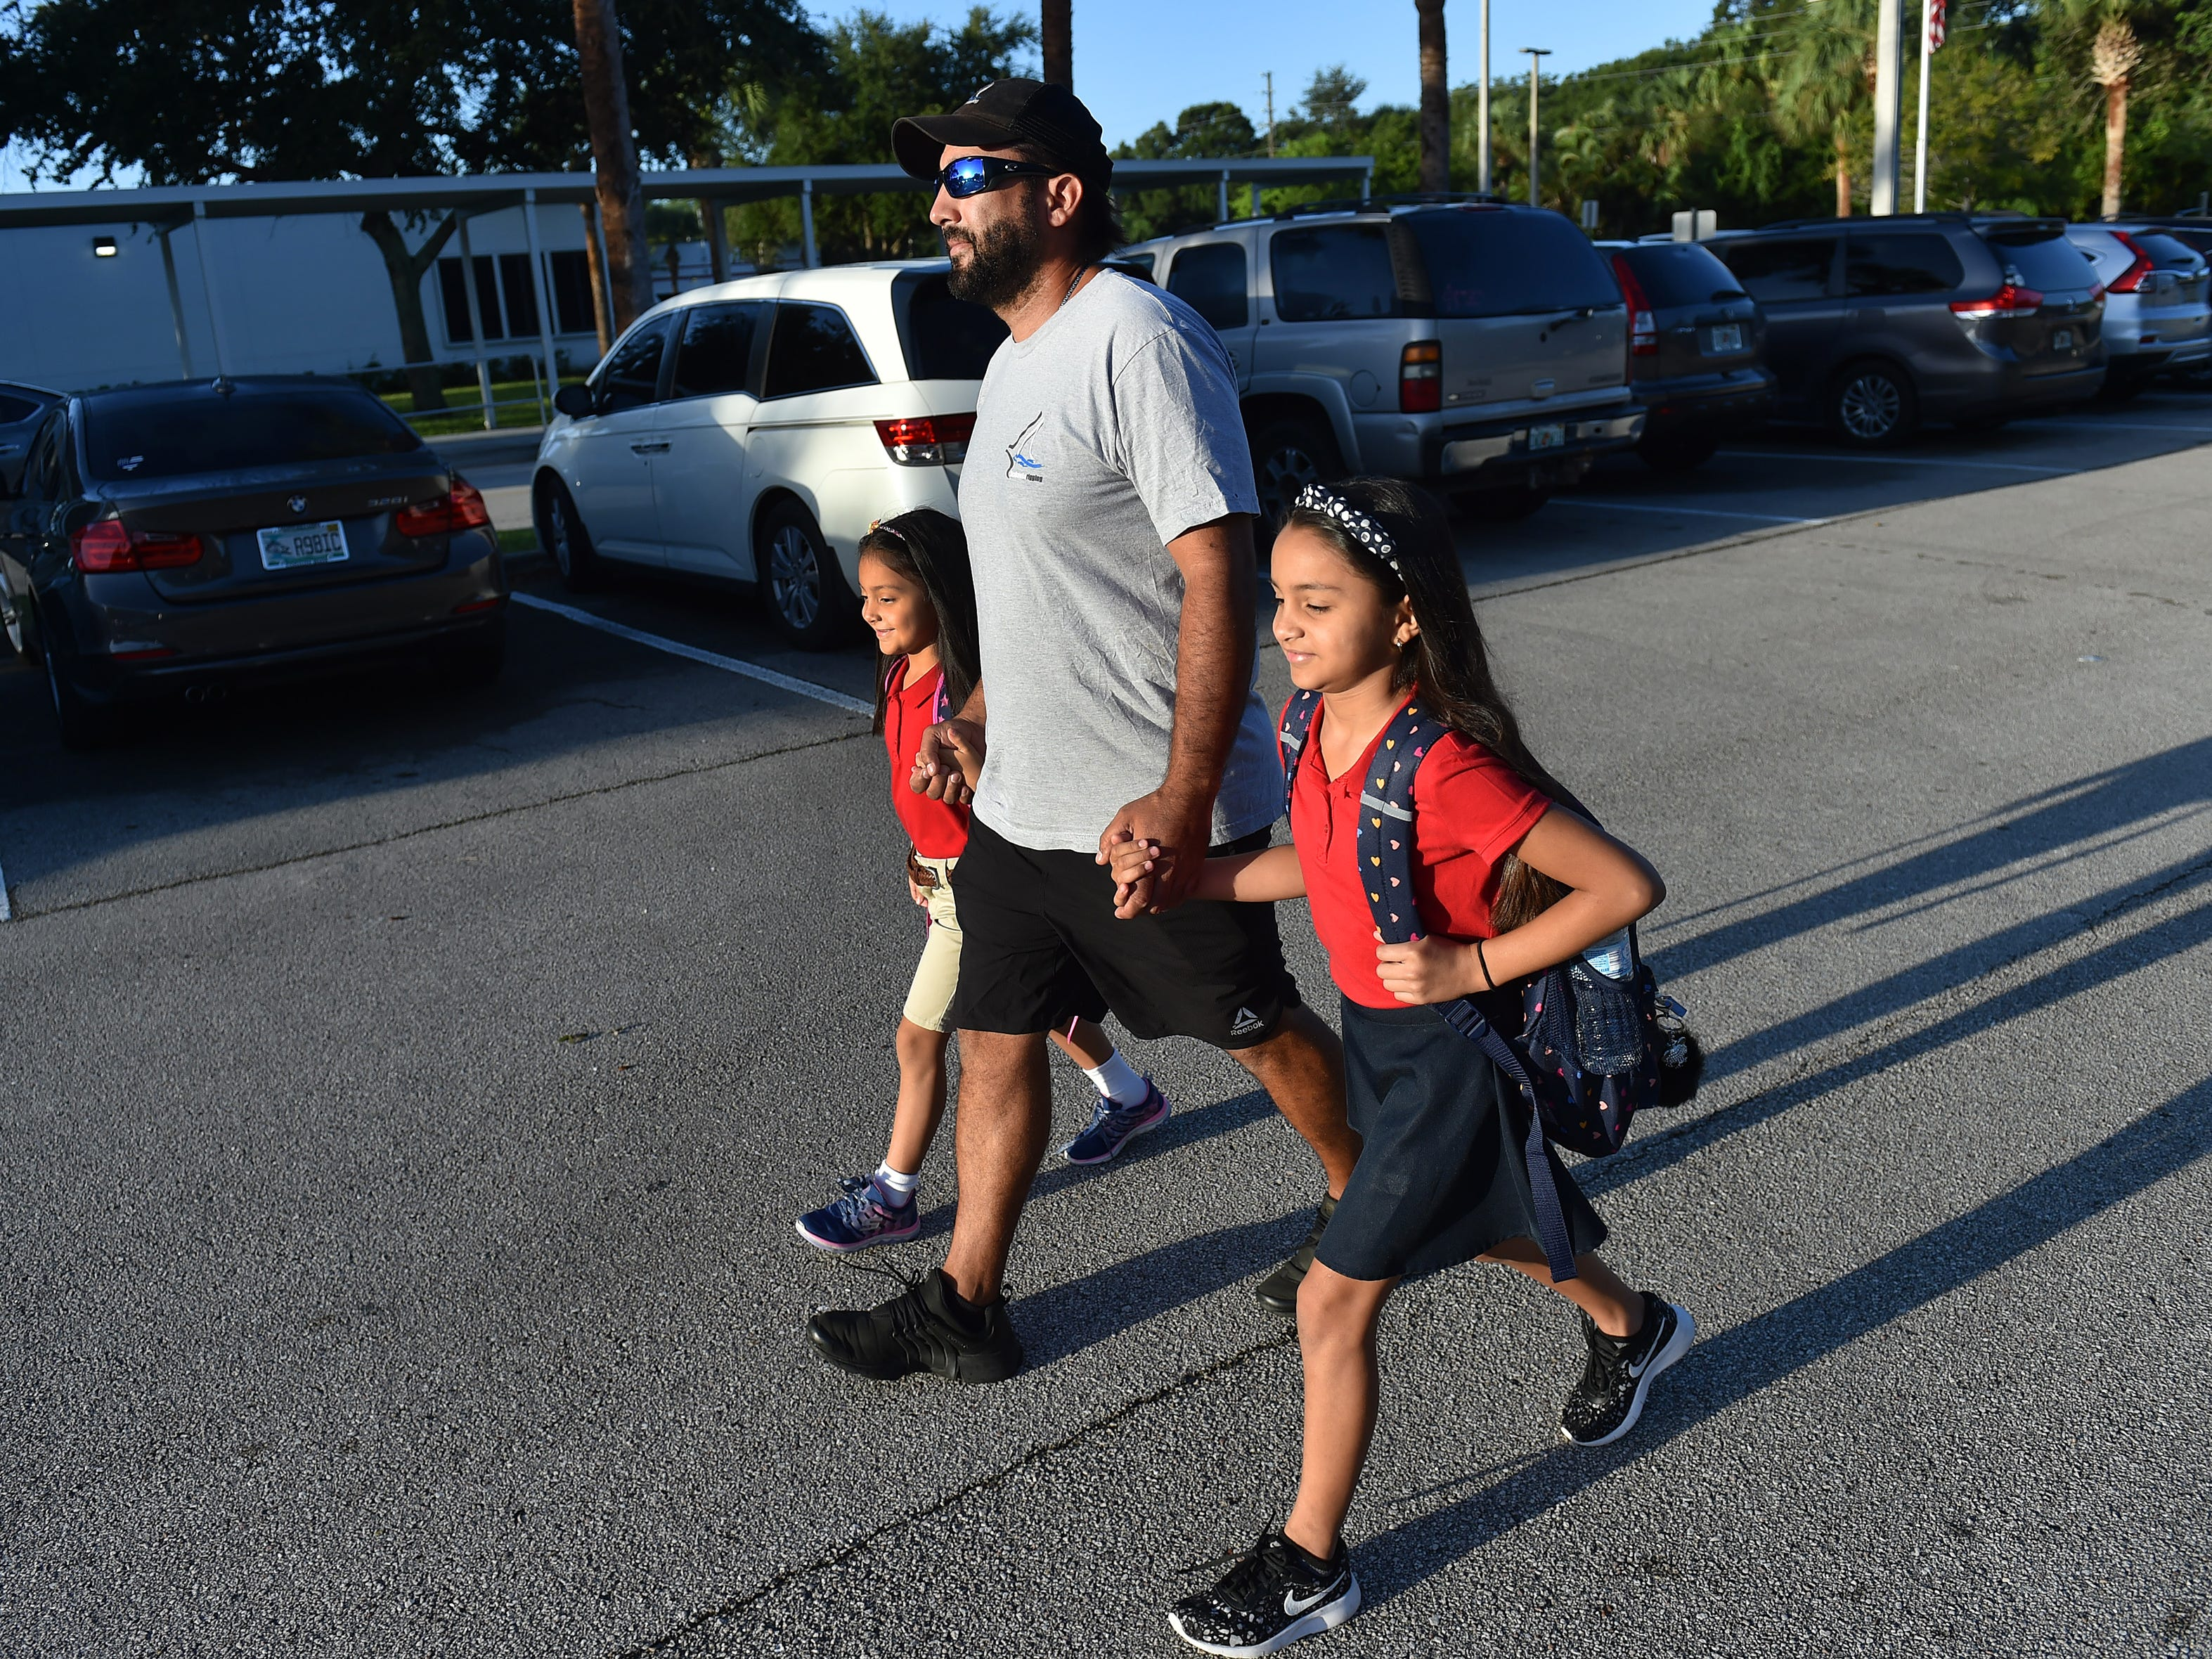 """I think it's a really cool thing,"" said Arturo Lopez, of Fort Pierce, while escorting his children Sadie, 6, (left) and Alexie, 9, into Fairlawn Elementary School, and to their first and fourth grade classrooms, for 'Take your dad to school day' on Wednesday, Sept. 26, 2018, in Fort Pierce. ""The school is different from others, and I think this is something different, really nice, and it's a really cool experience to have with your kids."" Dozens of fathers lined up with their children outside the school to walk their kids to their classrooms, meet teachers, and sign a contract promising their commitment to their children's education. ""It's always a great thing when we can bring families together with what we're doing in education,"" said Kevin Perry, Principal at Fairlawn Elementary. ""And this just gives us another opportunity to specifically invite dads to be a part of the educational process."" CQ: Arturo, Sadie,and Alexie Lopez, Kevin Perry"